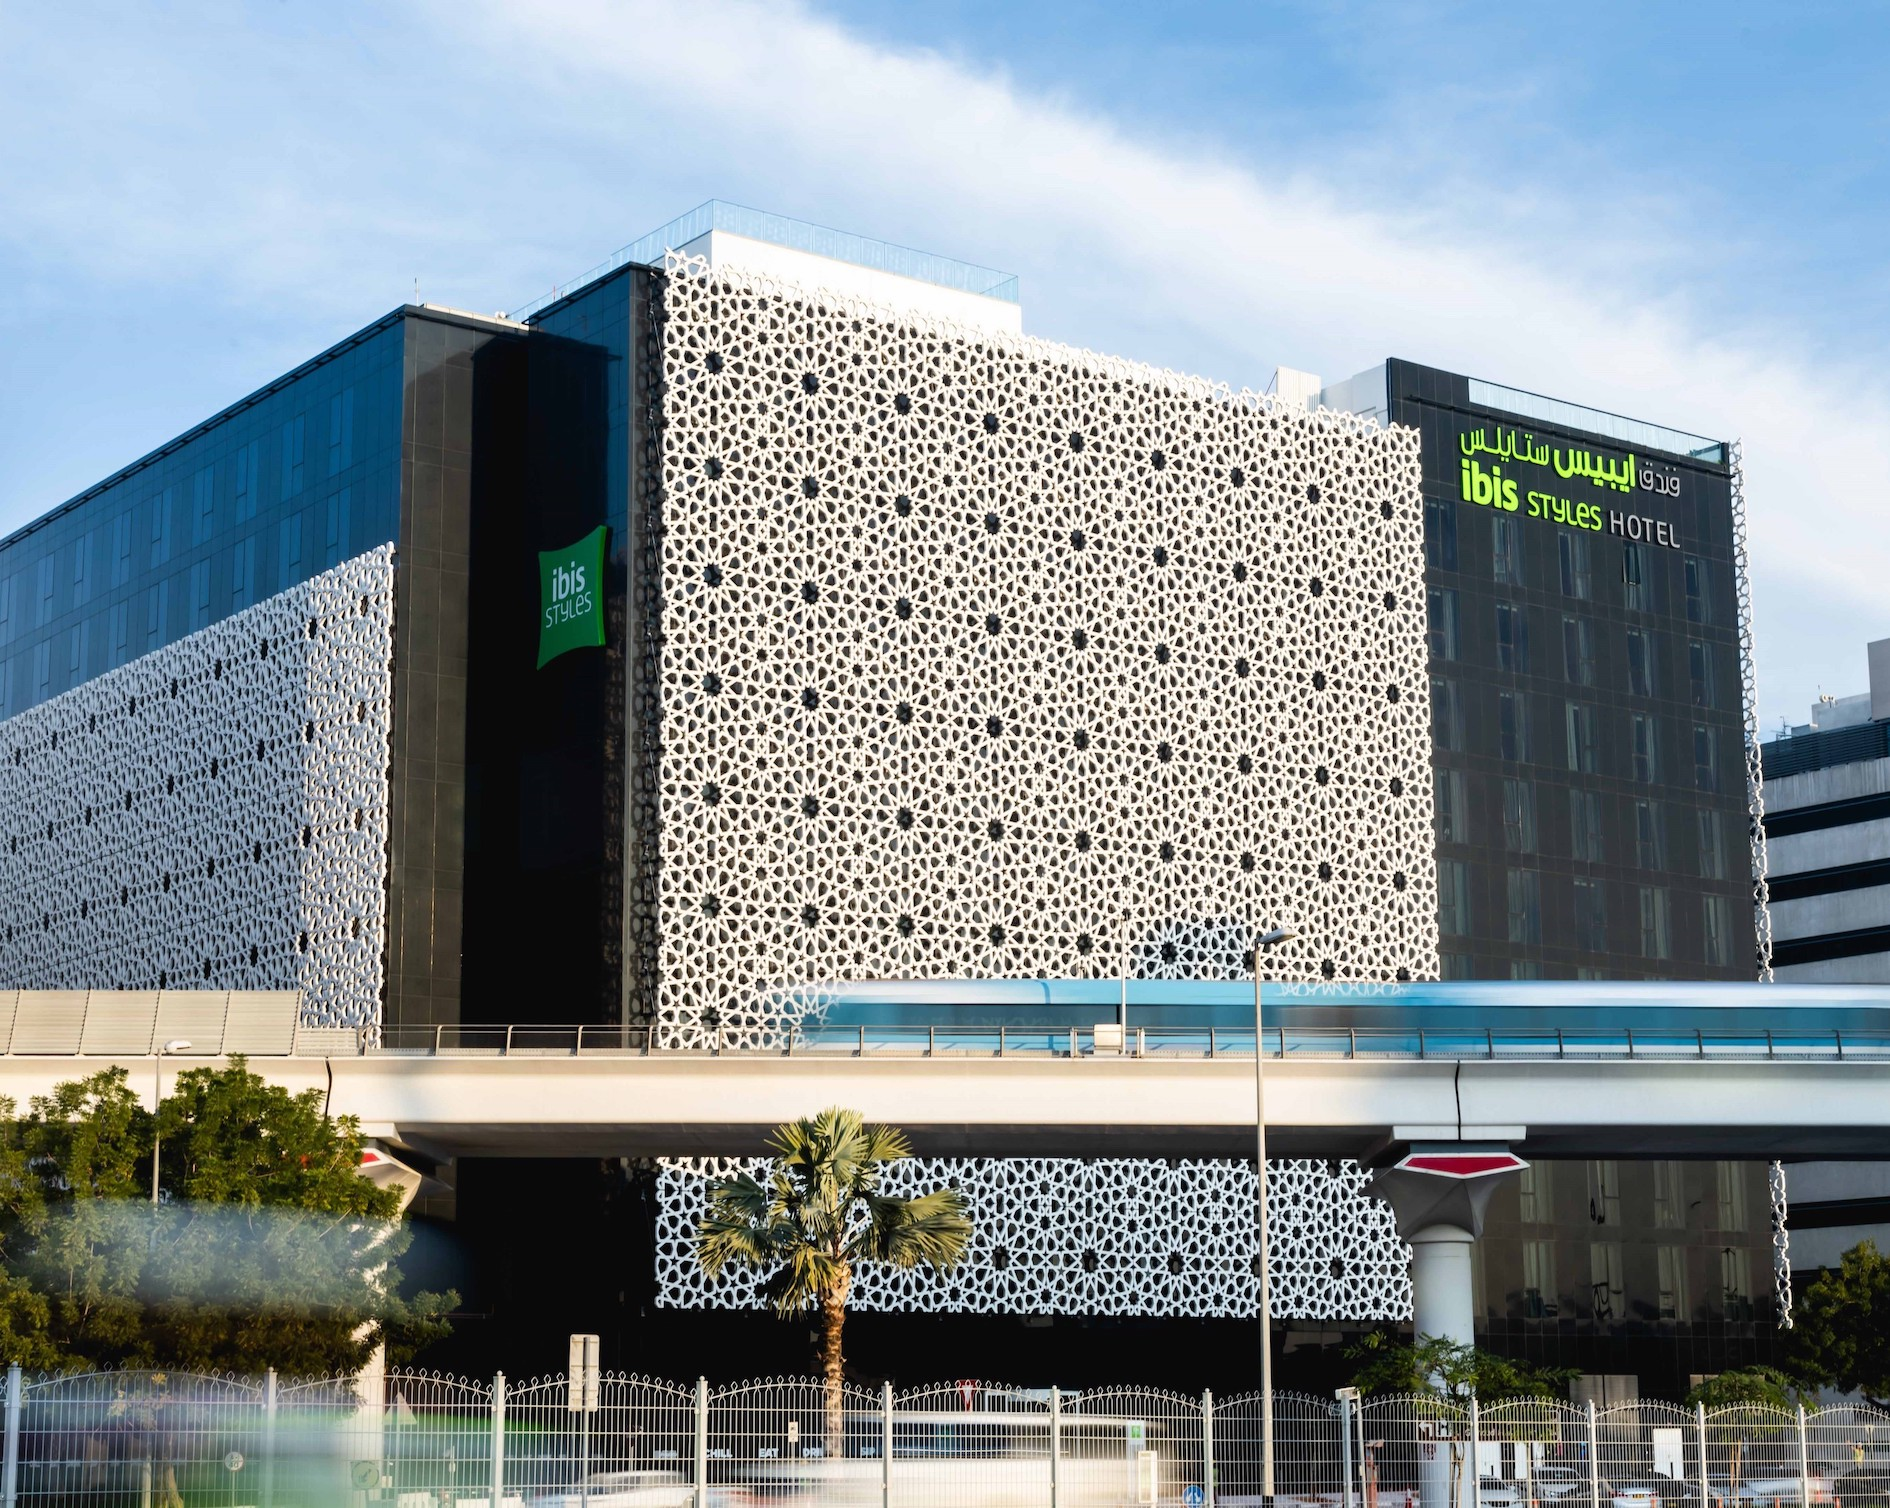 Accor S Ibis Styles Dubai Airport Opens Caters To Modern Travellers Business Construction Week Online